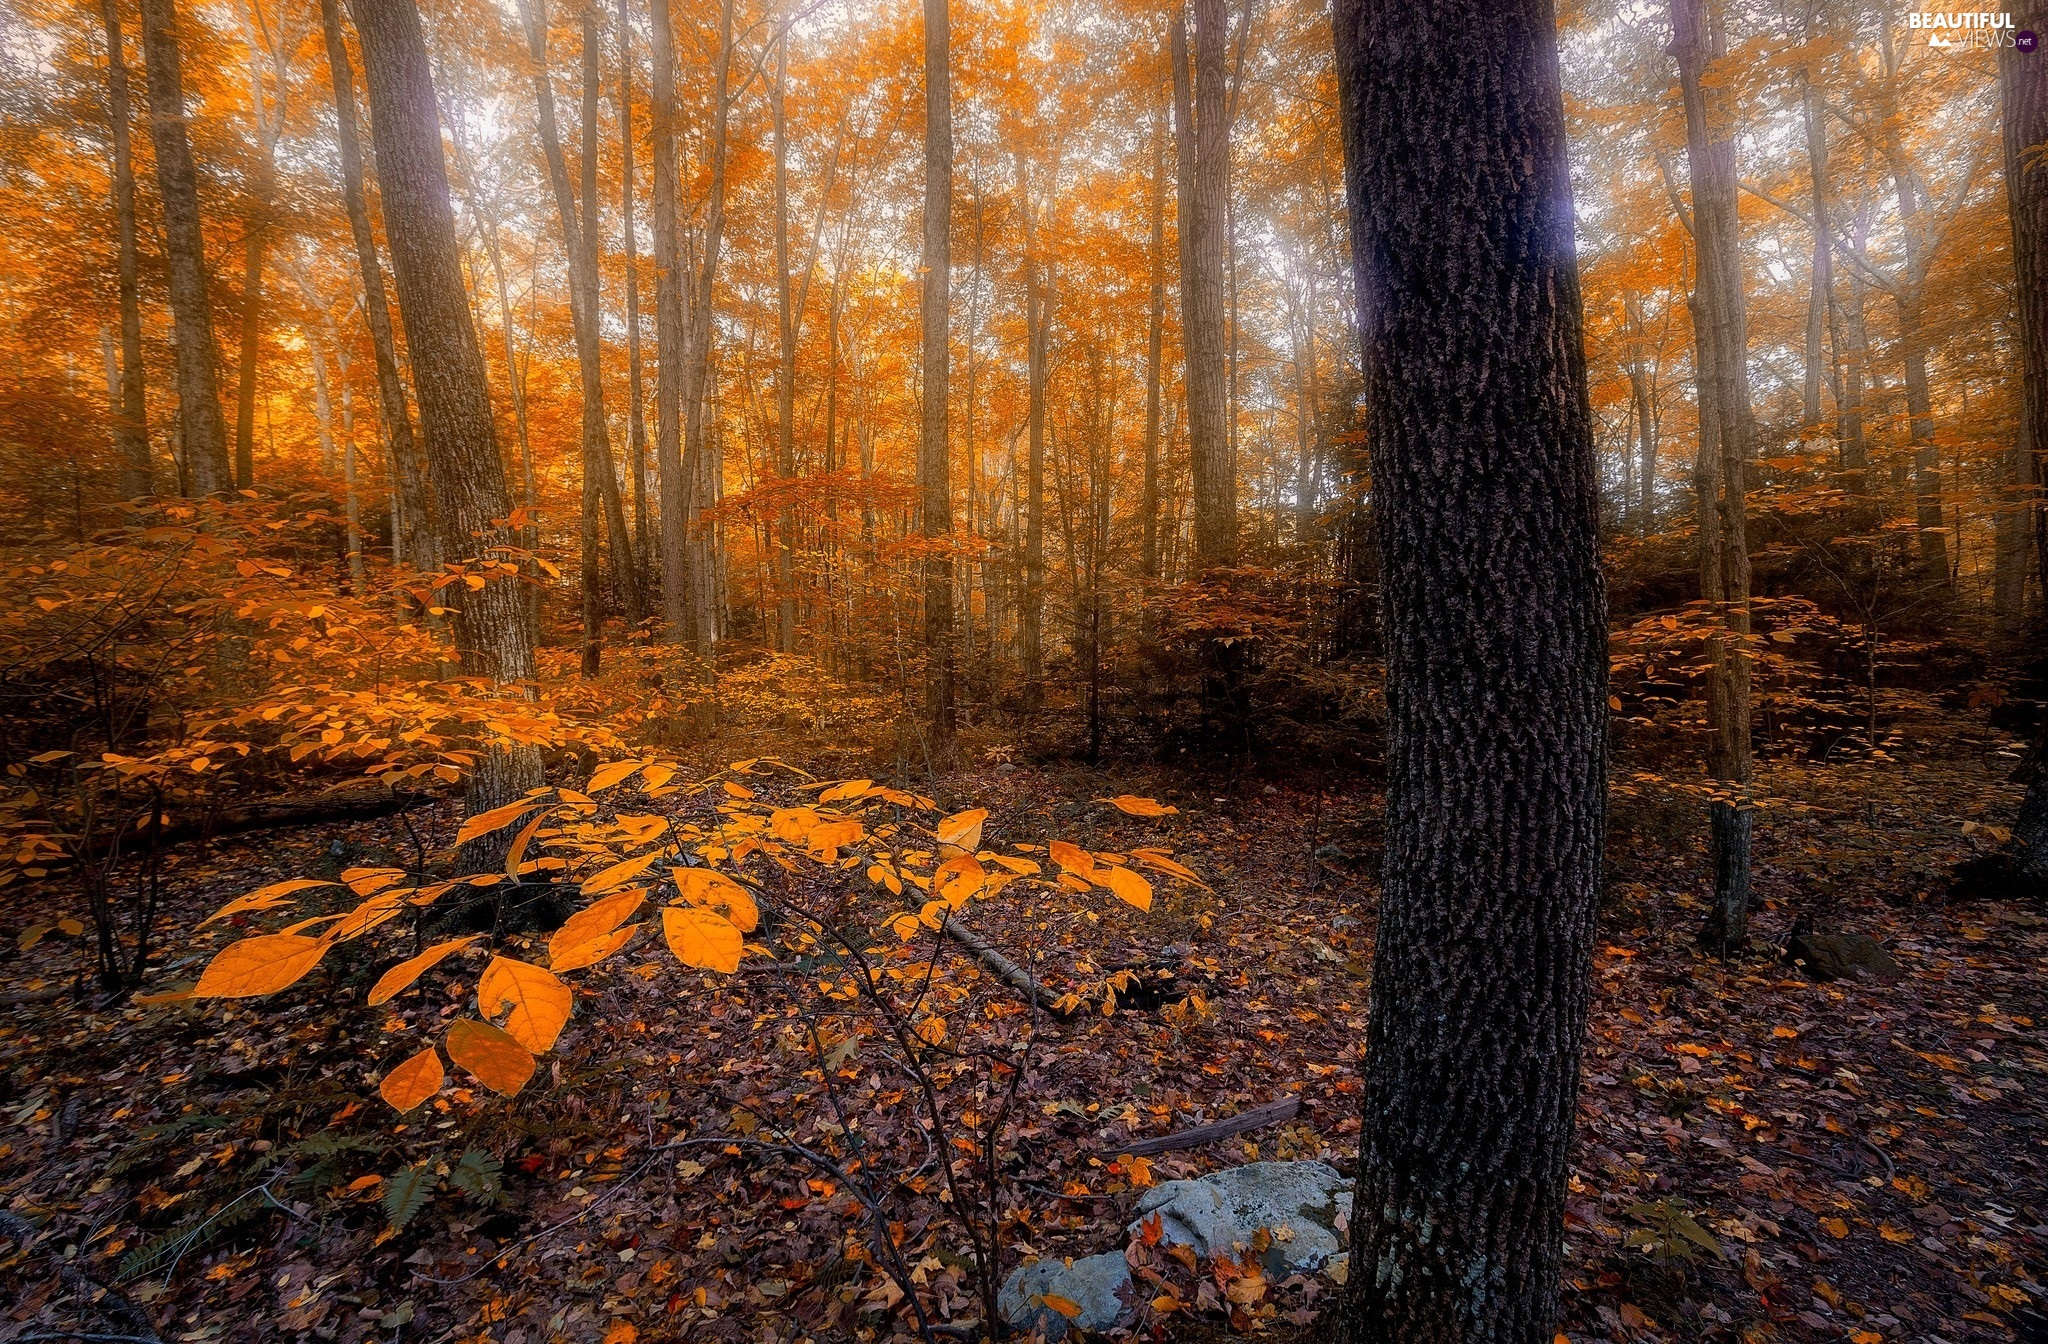 forest, Leaf, trees, viewes, autumn